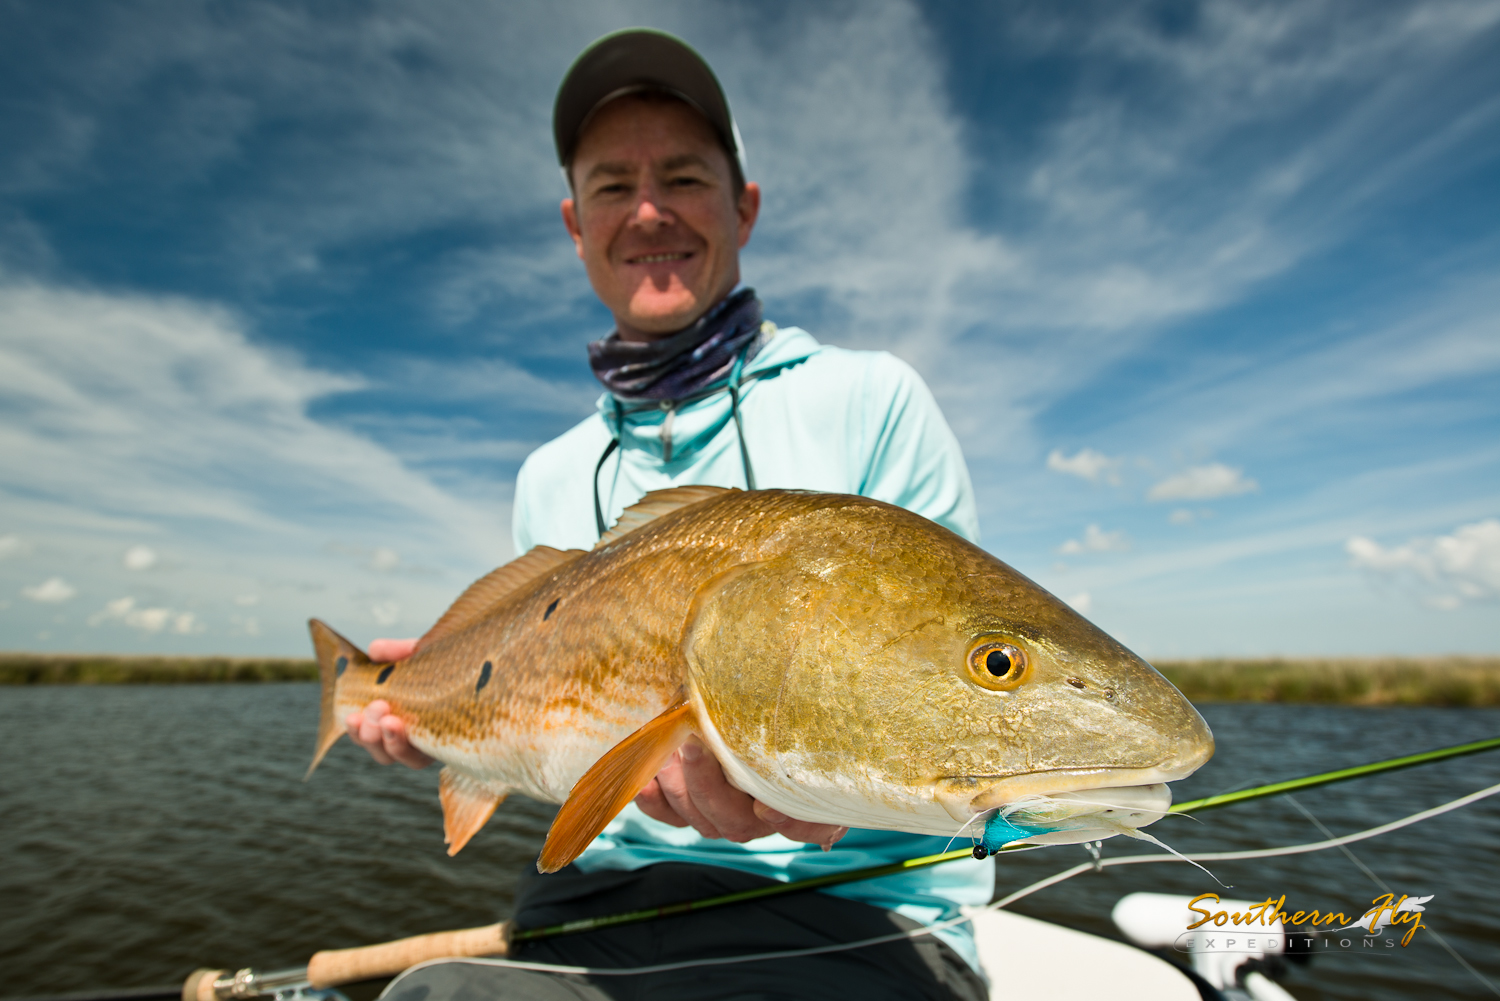 Maryland Anglers Weekend Fly Fishing New Orleans